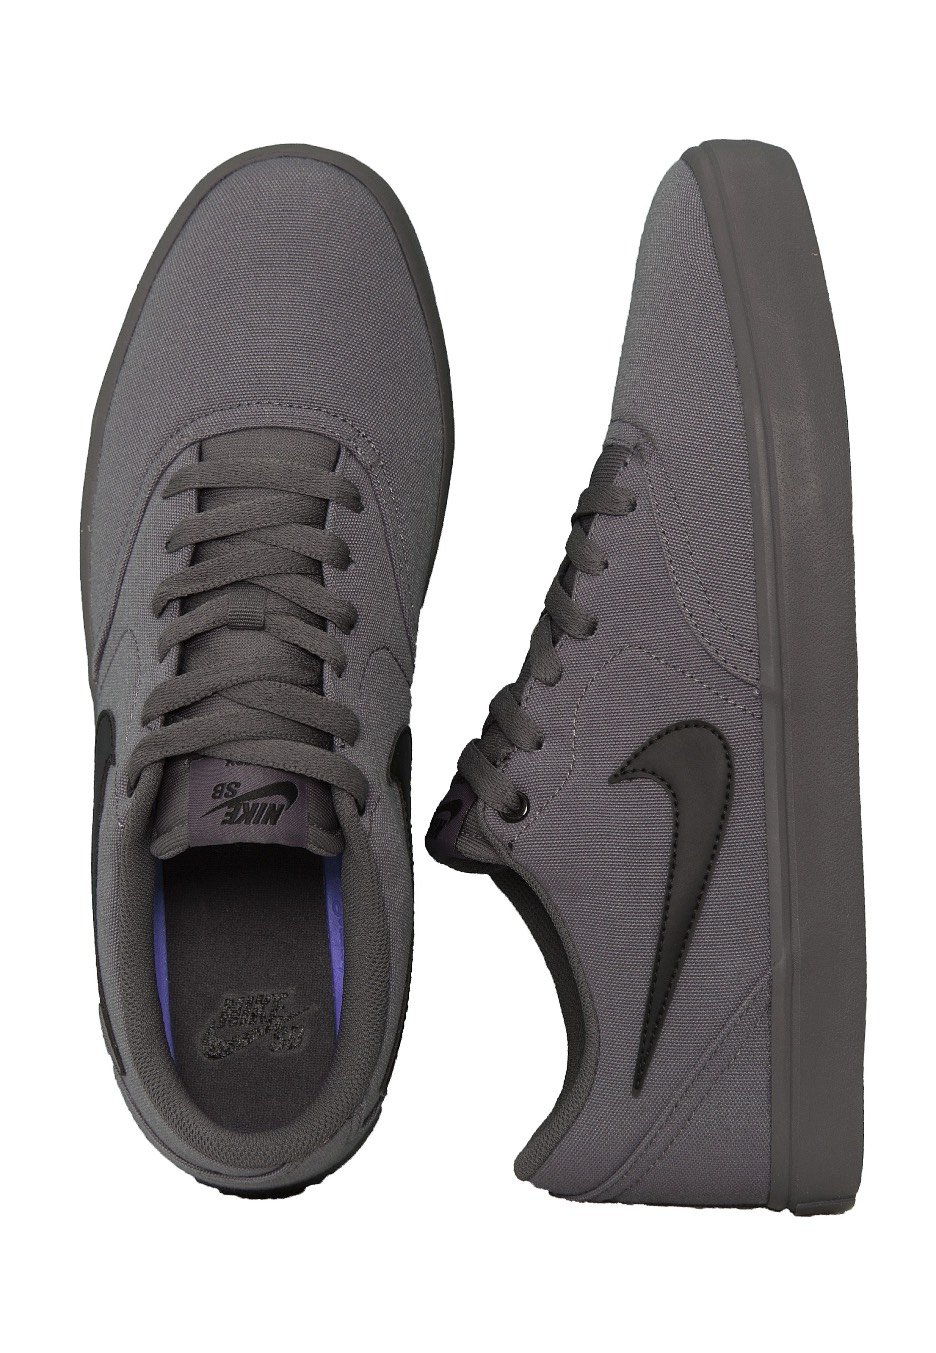 Nike - SB Check Solarsoft Canvas Dark Grey Black - Shoes - Streetwear Shop  - Impericon.com UK 906d69df7df3